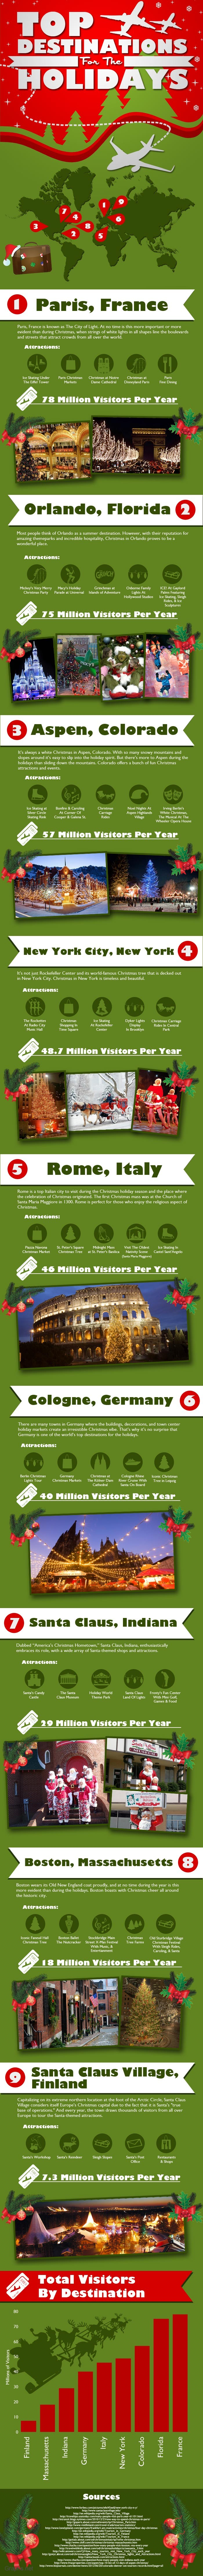 Top 9 Holiday Destinations in the World